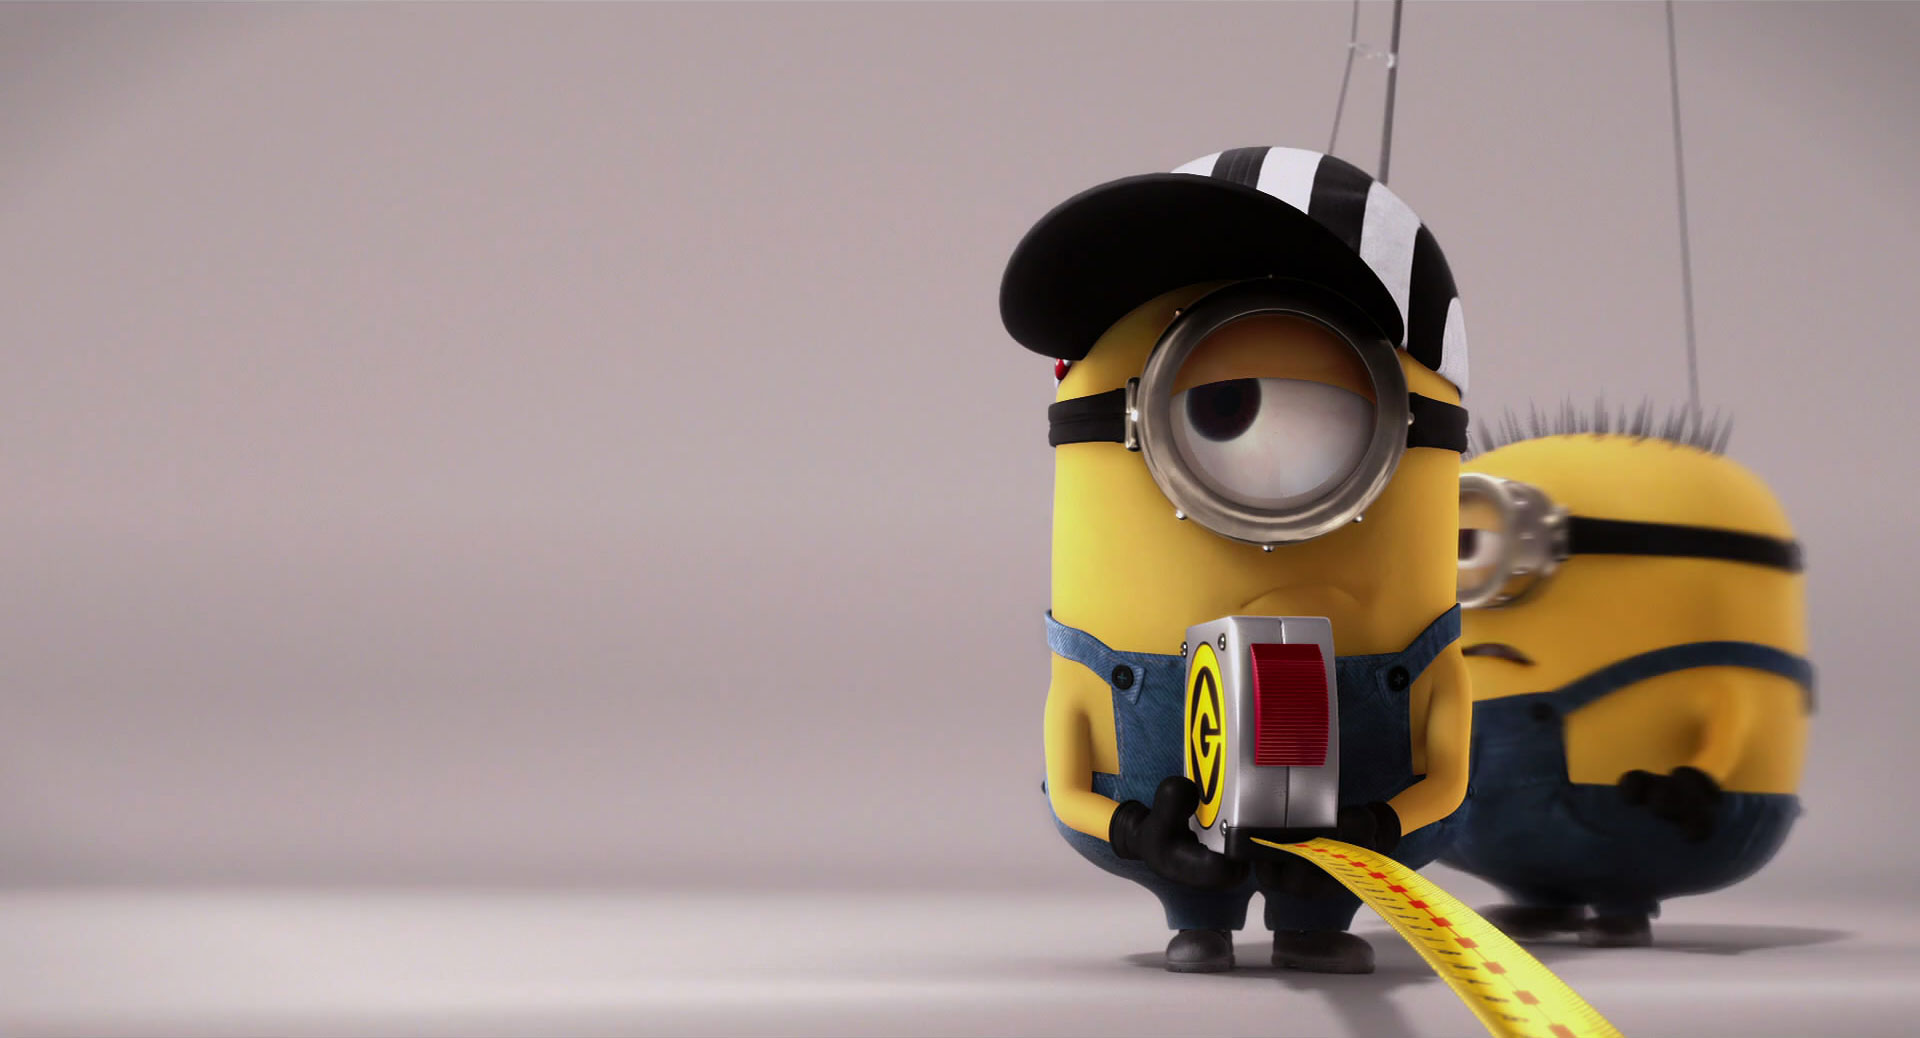 48 Free Minions Wallpapers For Desktop On Wallpapersafari